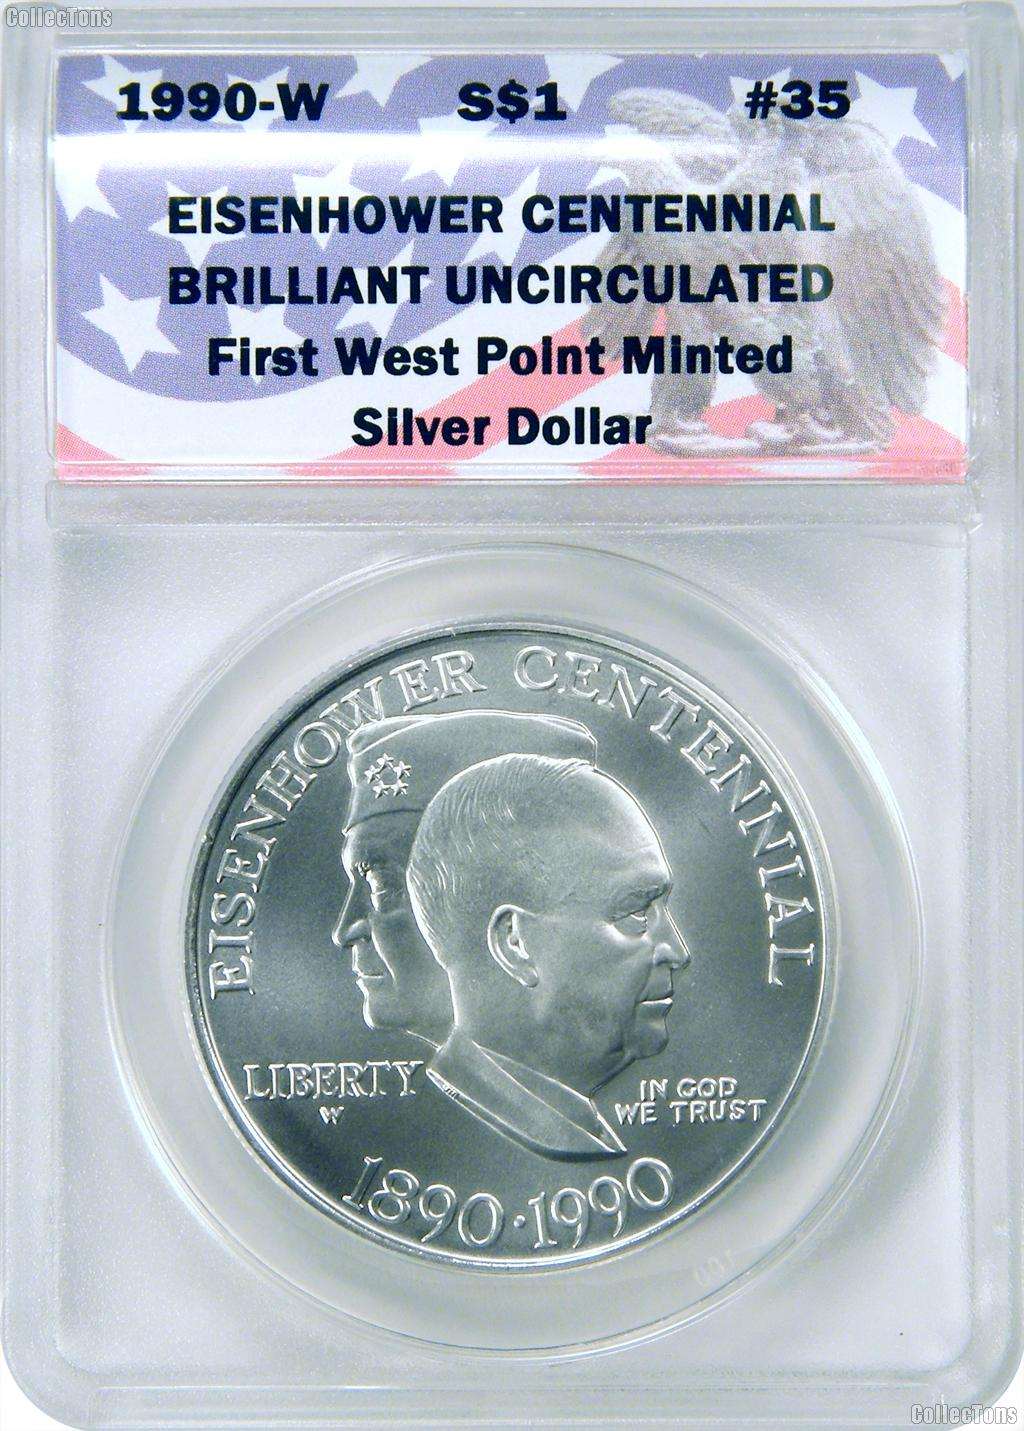 CollecTons Keepers #35: 1990-W Commemorative Eisenhower Centennial Silver Dollar Certified in Exclusive ANACS Brilliant Uncirculated Holder